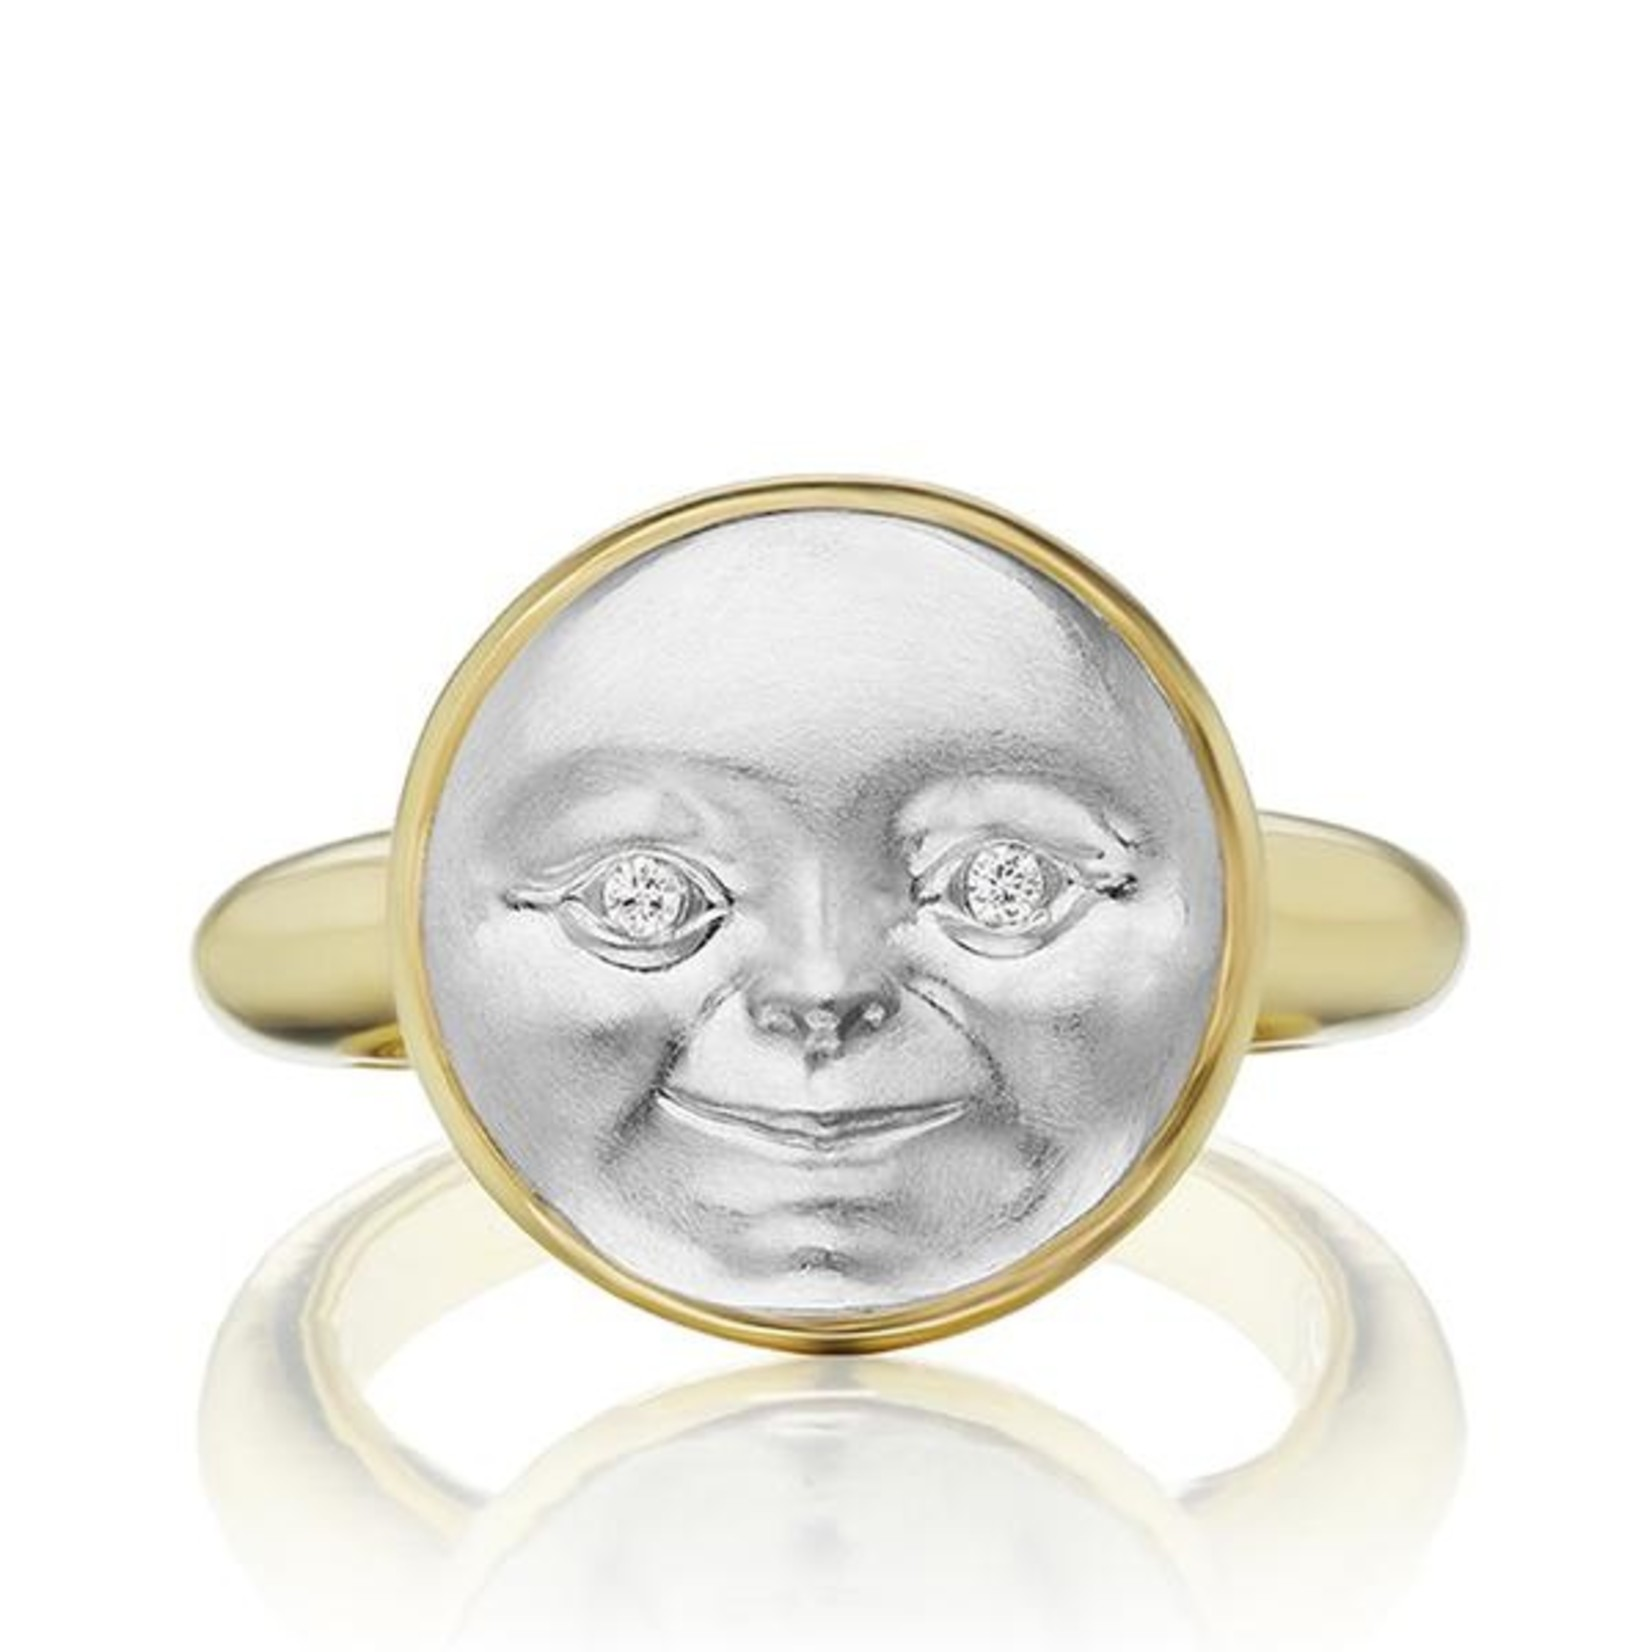 ANTHONY LENT PLATINUM AND GOLD MOONFACE RING